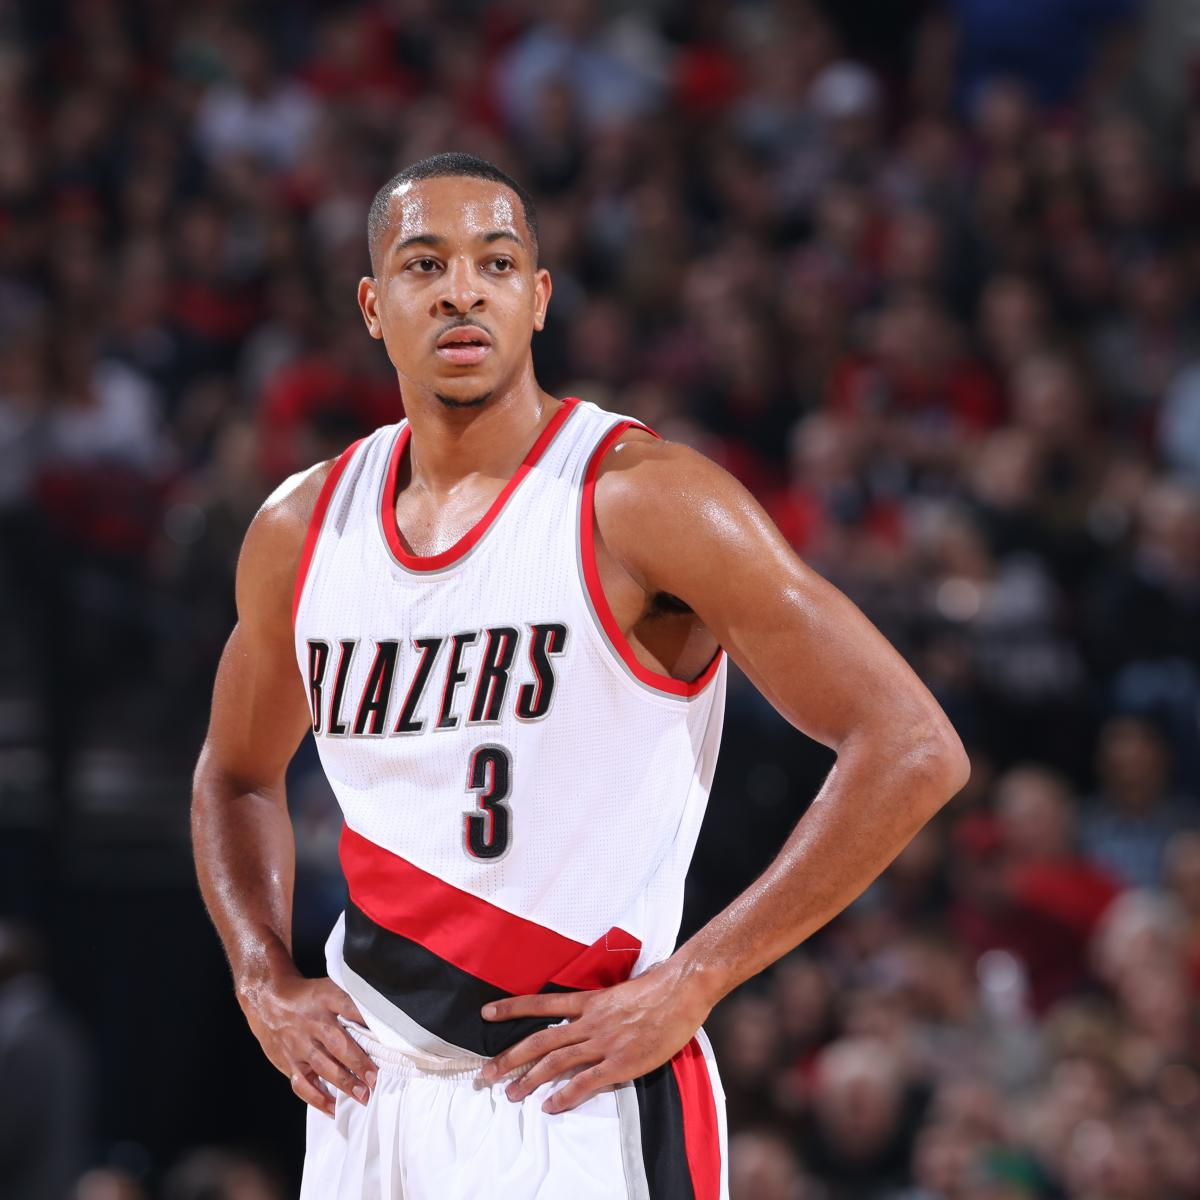 Report: Blazers' CJ McCollum Received PRP Injection for Knee Injury in Offseason